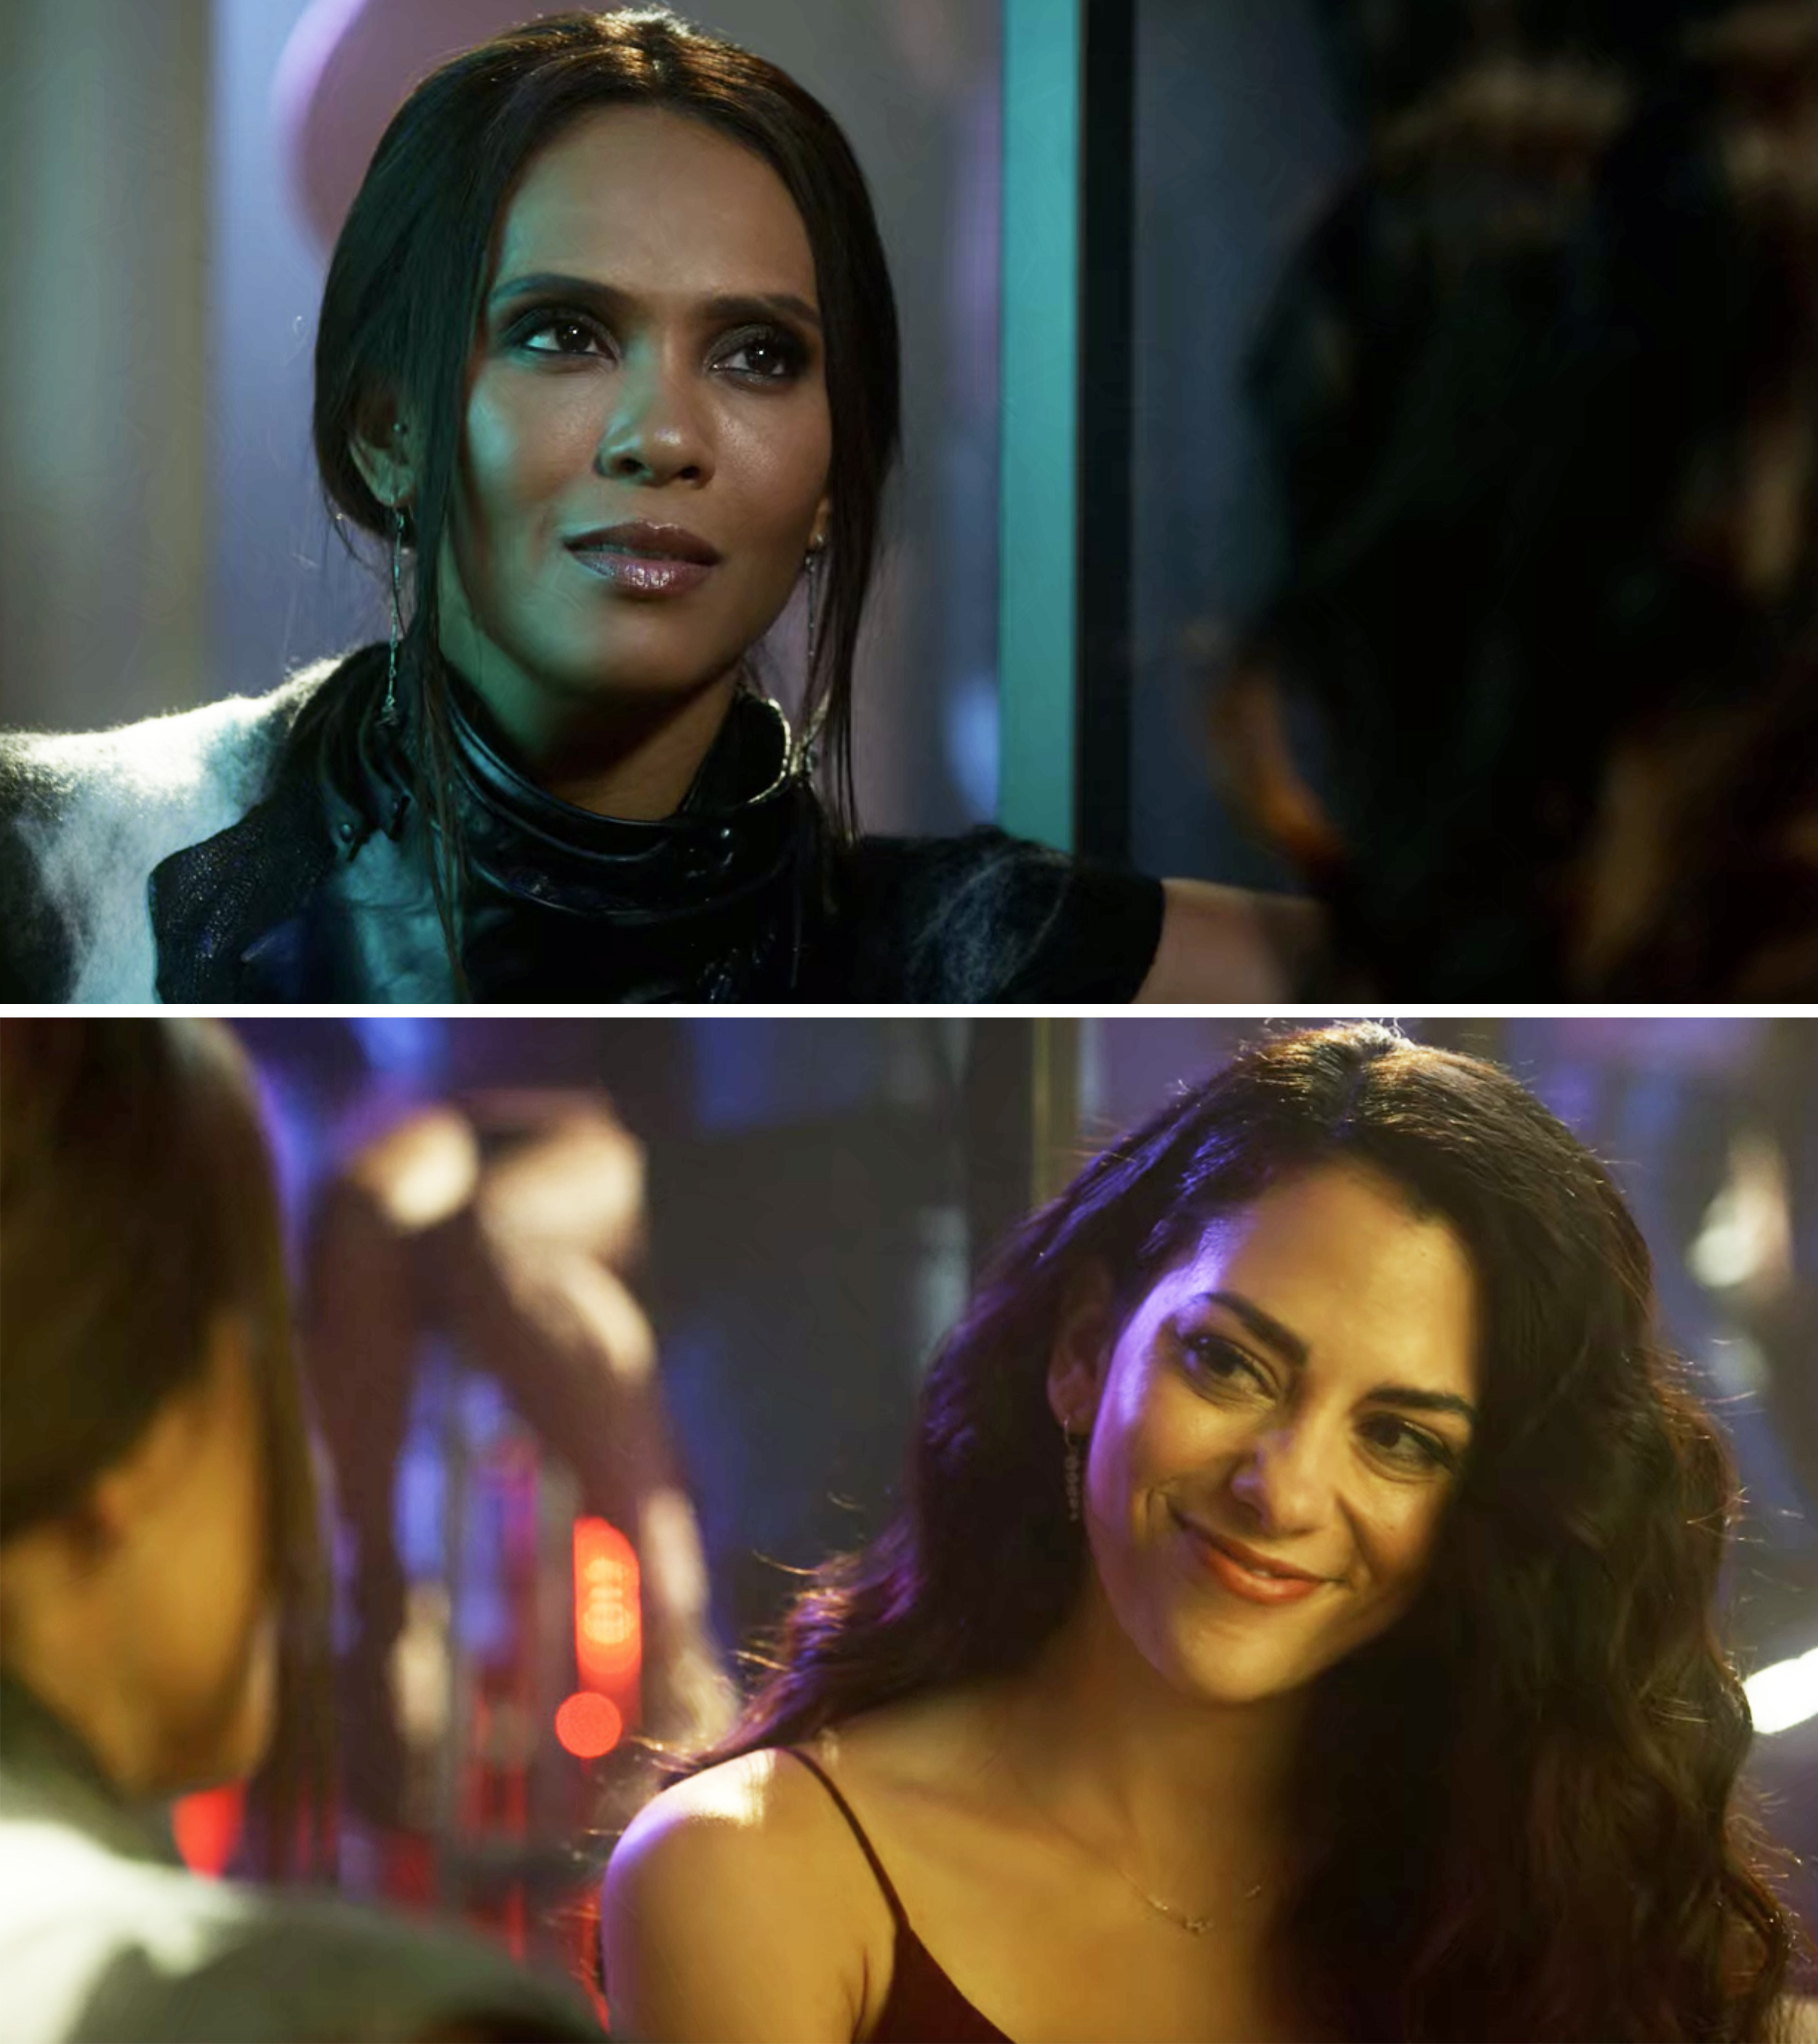 Maze and Eve looking at each other